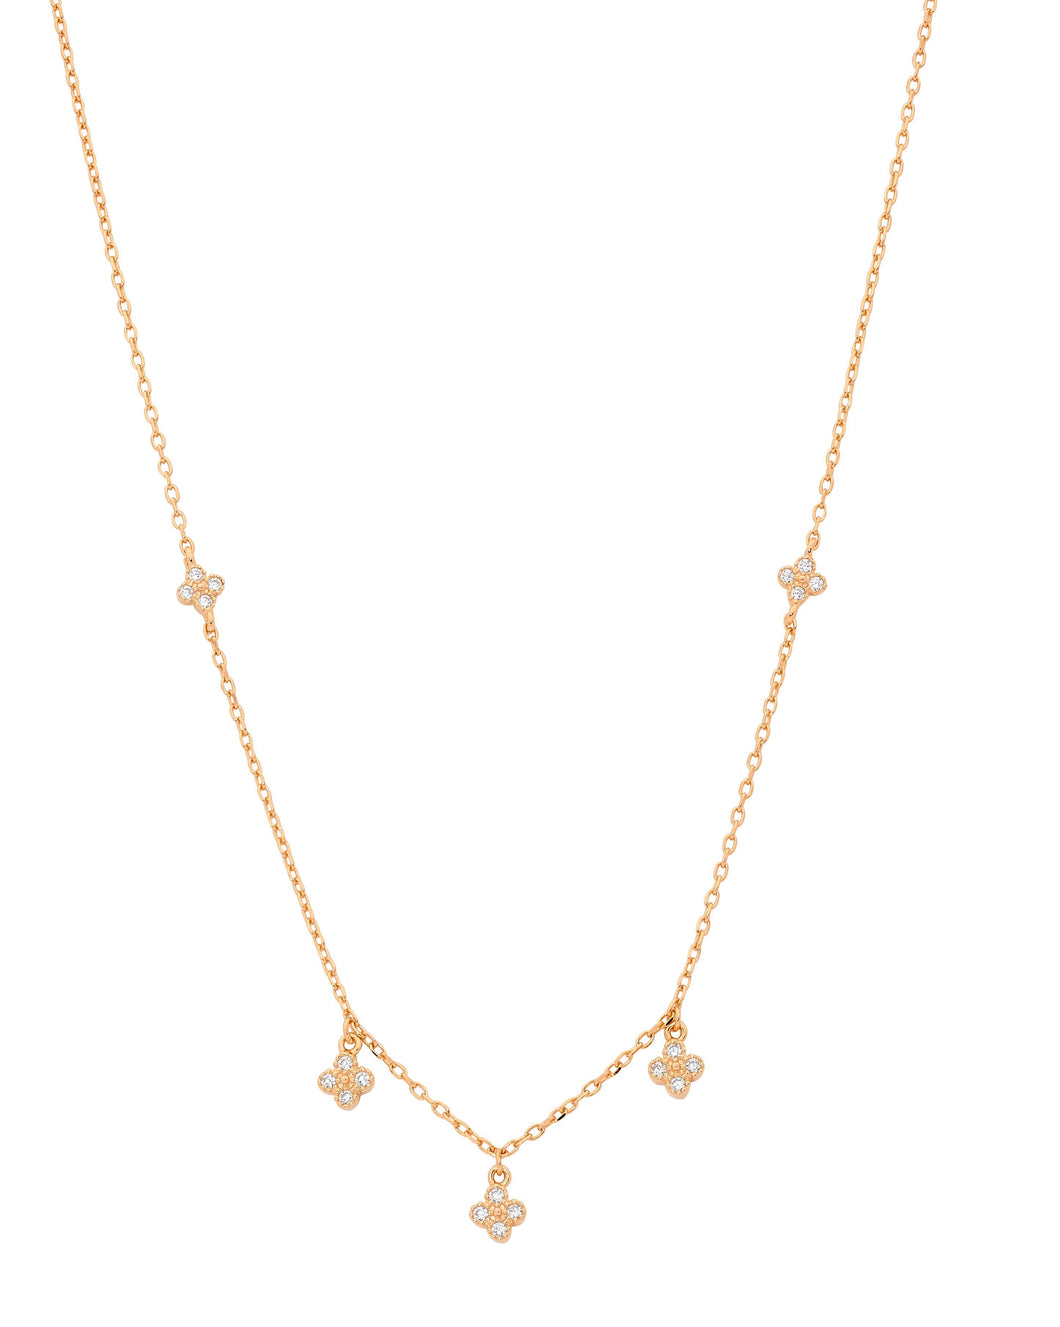 SS 4 WH CZ Cluster Crown set Necklace w/ Rose Gold Plating